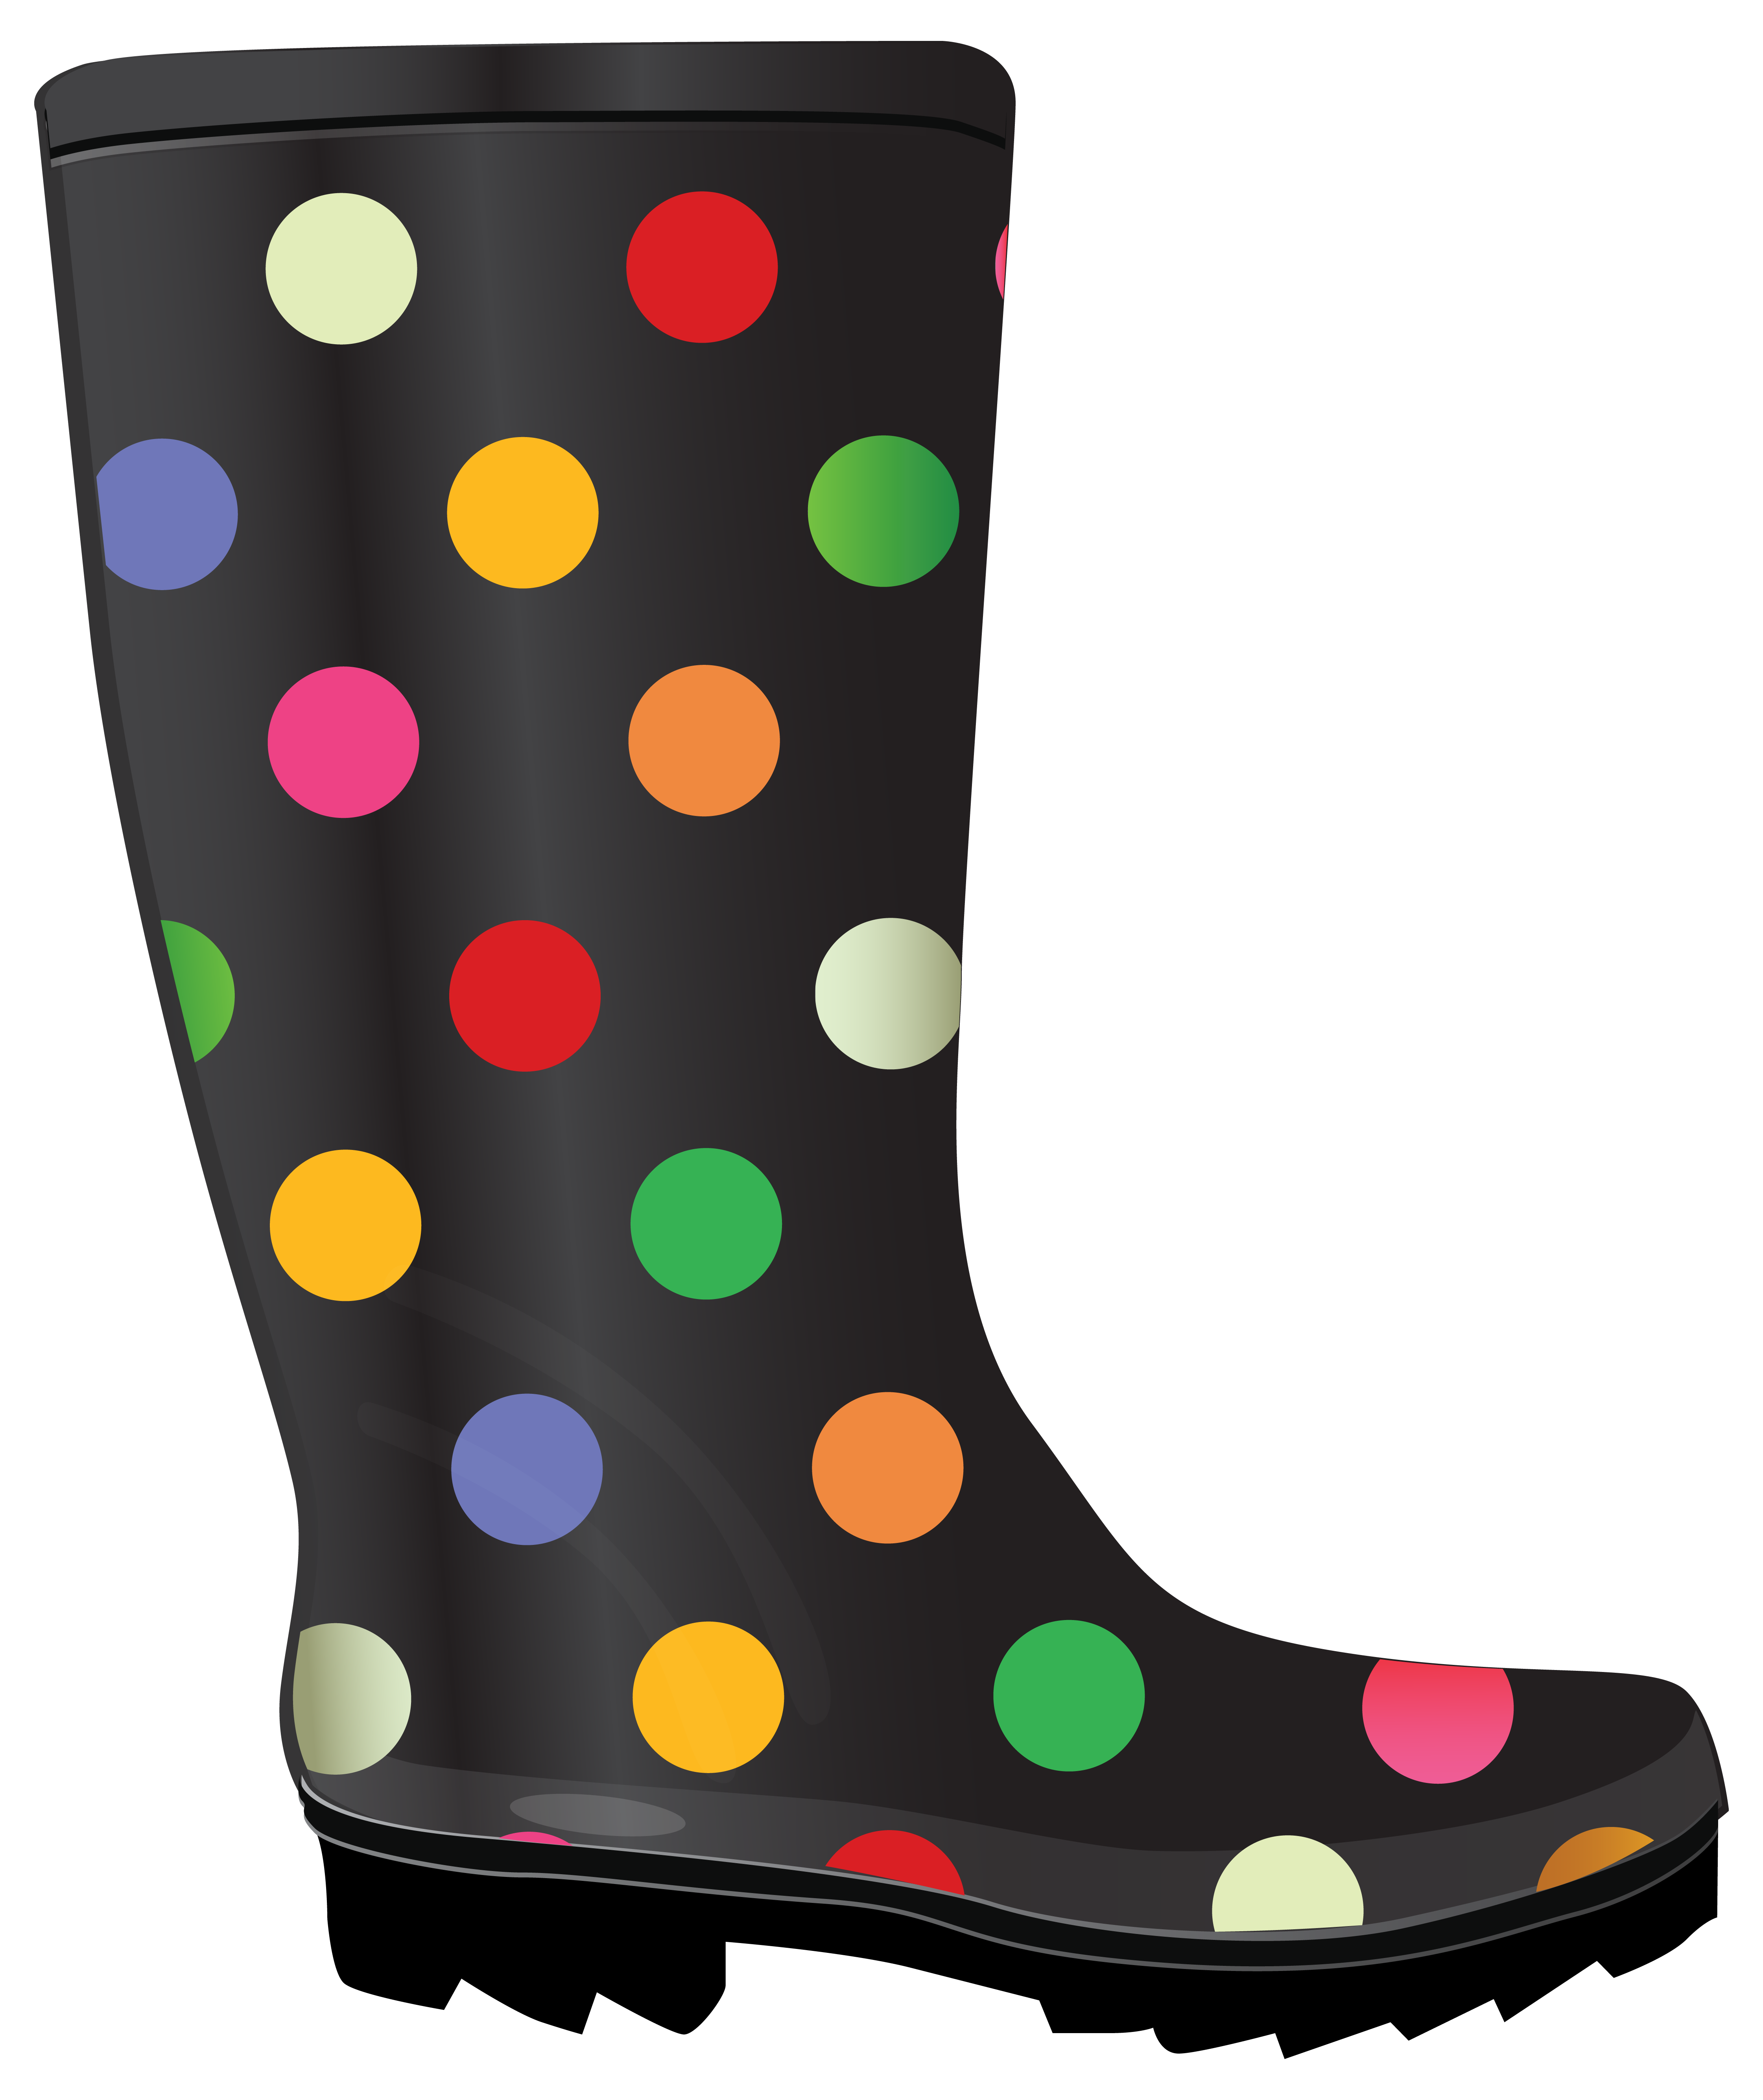 Transparent boot cute rain. Dotted rubber boots and